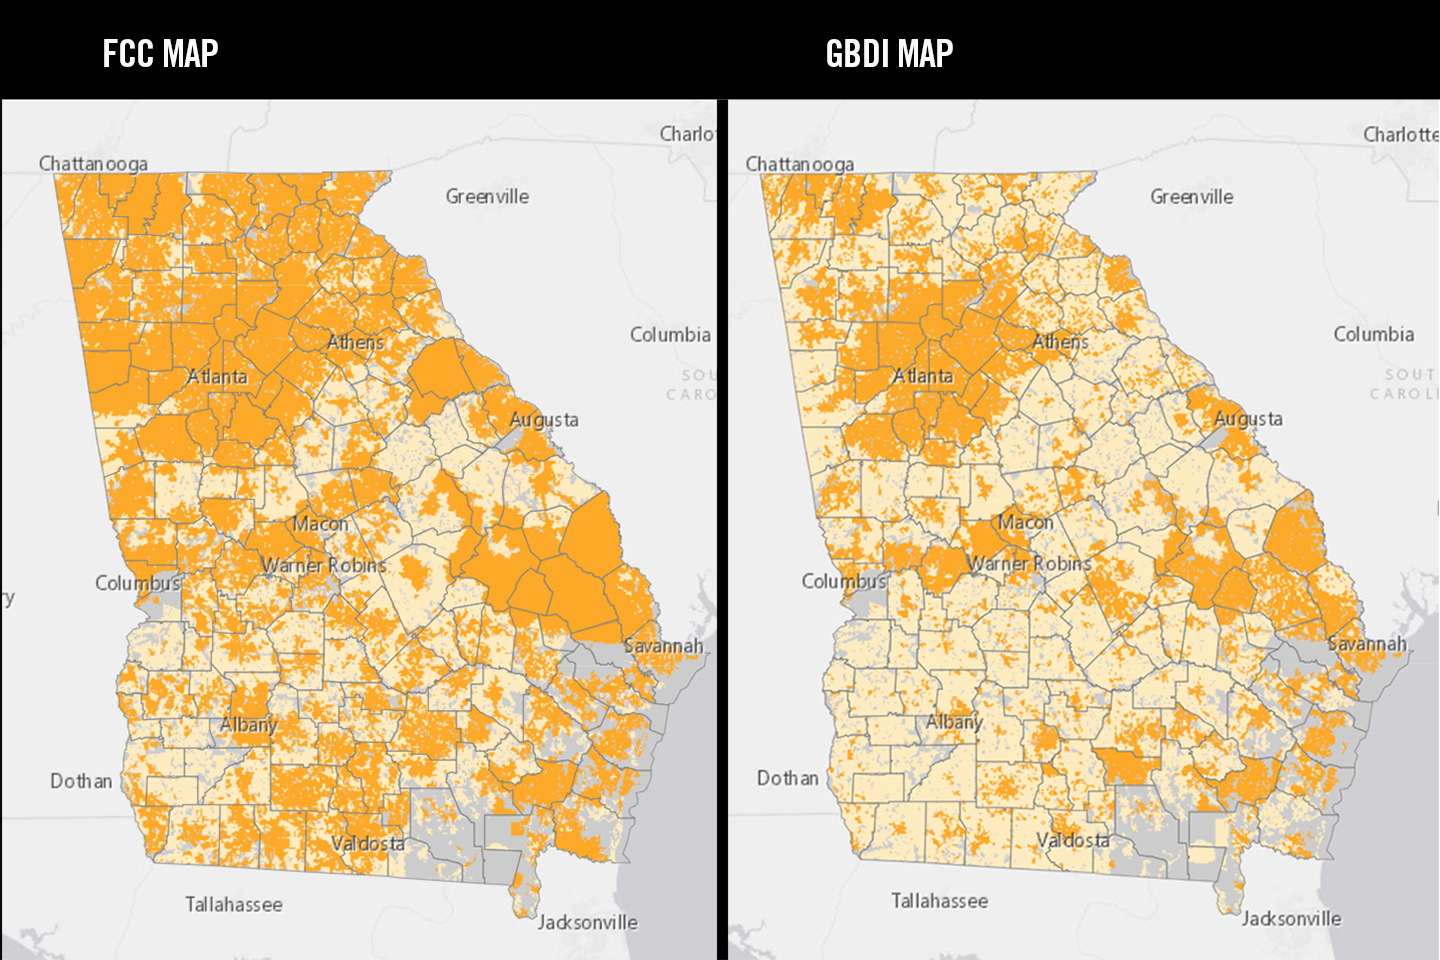 A graphic showing the perceived broadband availability using FCC data on the left, and the new GBDI map on the right.